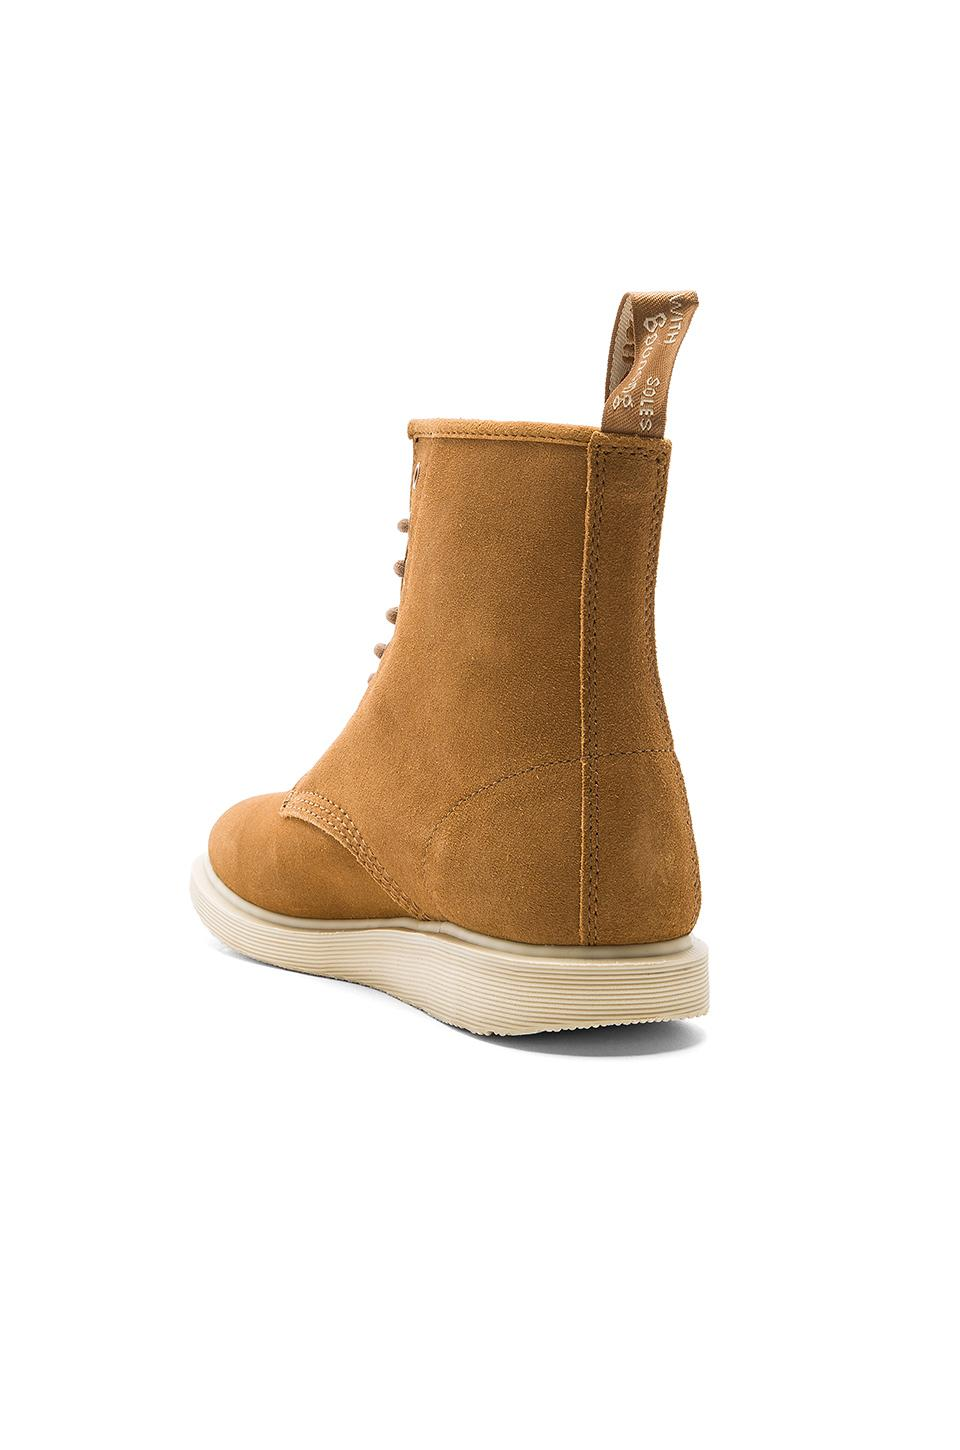 Dr. Martens Suede Whiton 8 Eye Boots in Brown